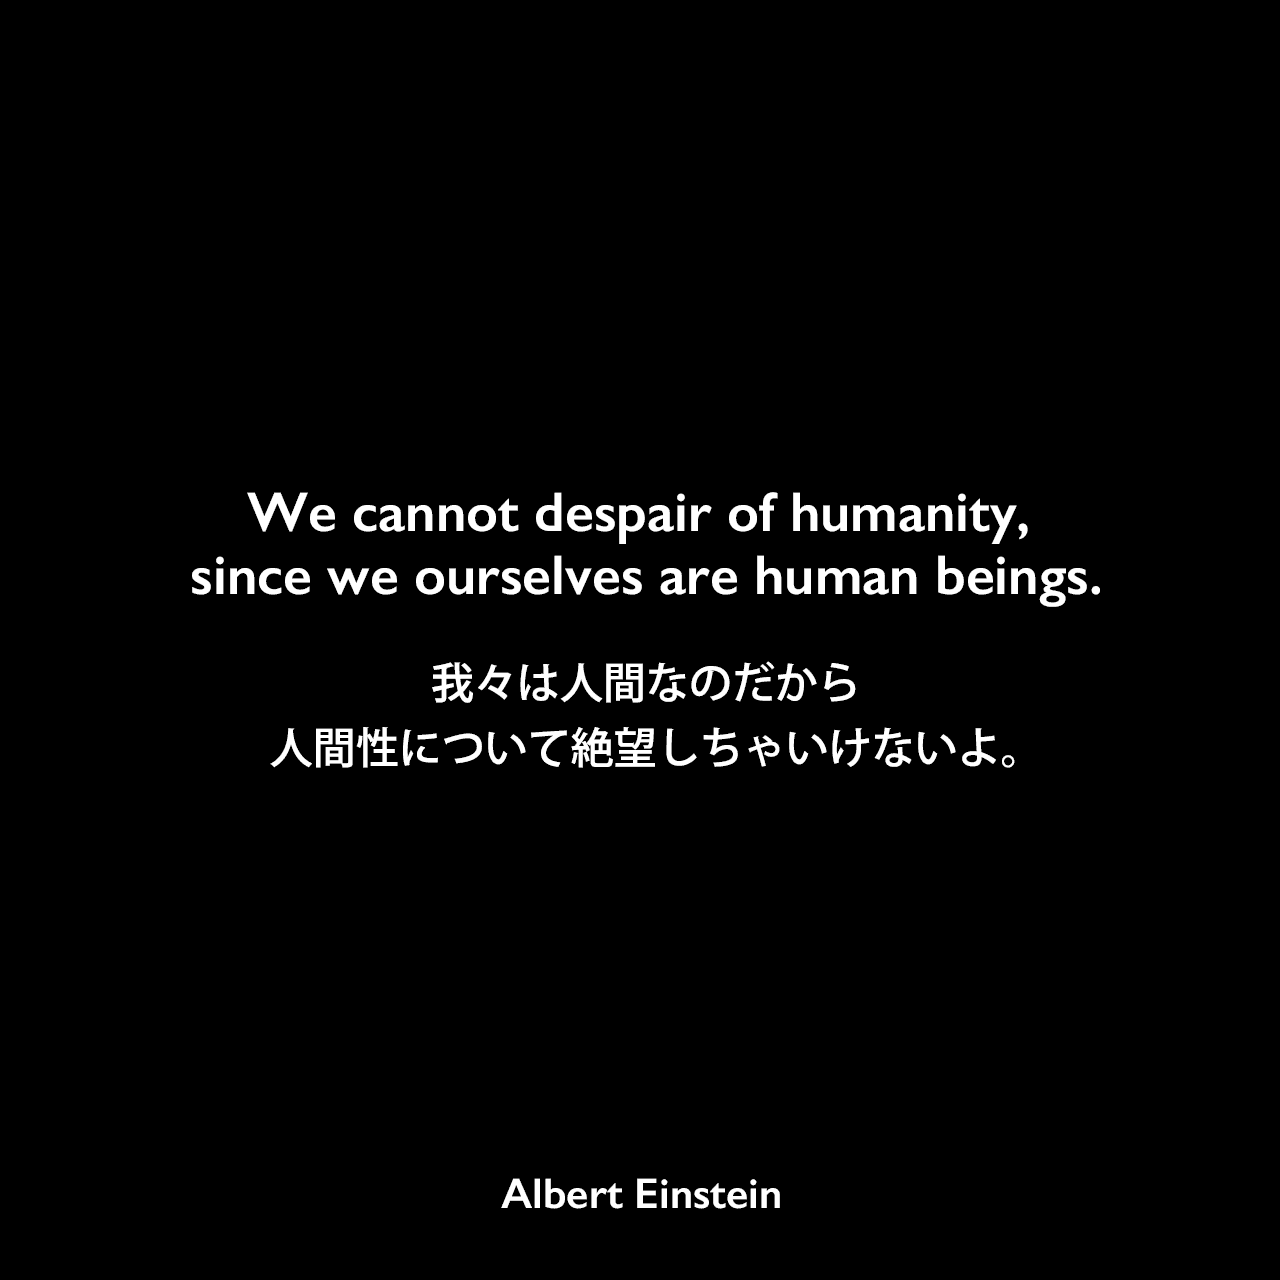 We cannot despair of humanity, since we ourselves are human beings.我々は人間なのだから、人間性について絶望しちゃいけないよ。Albert Einstein